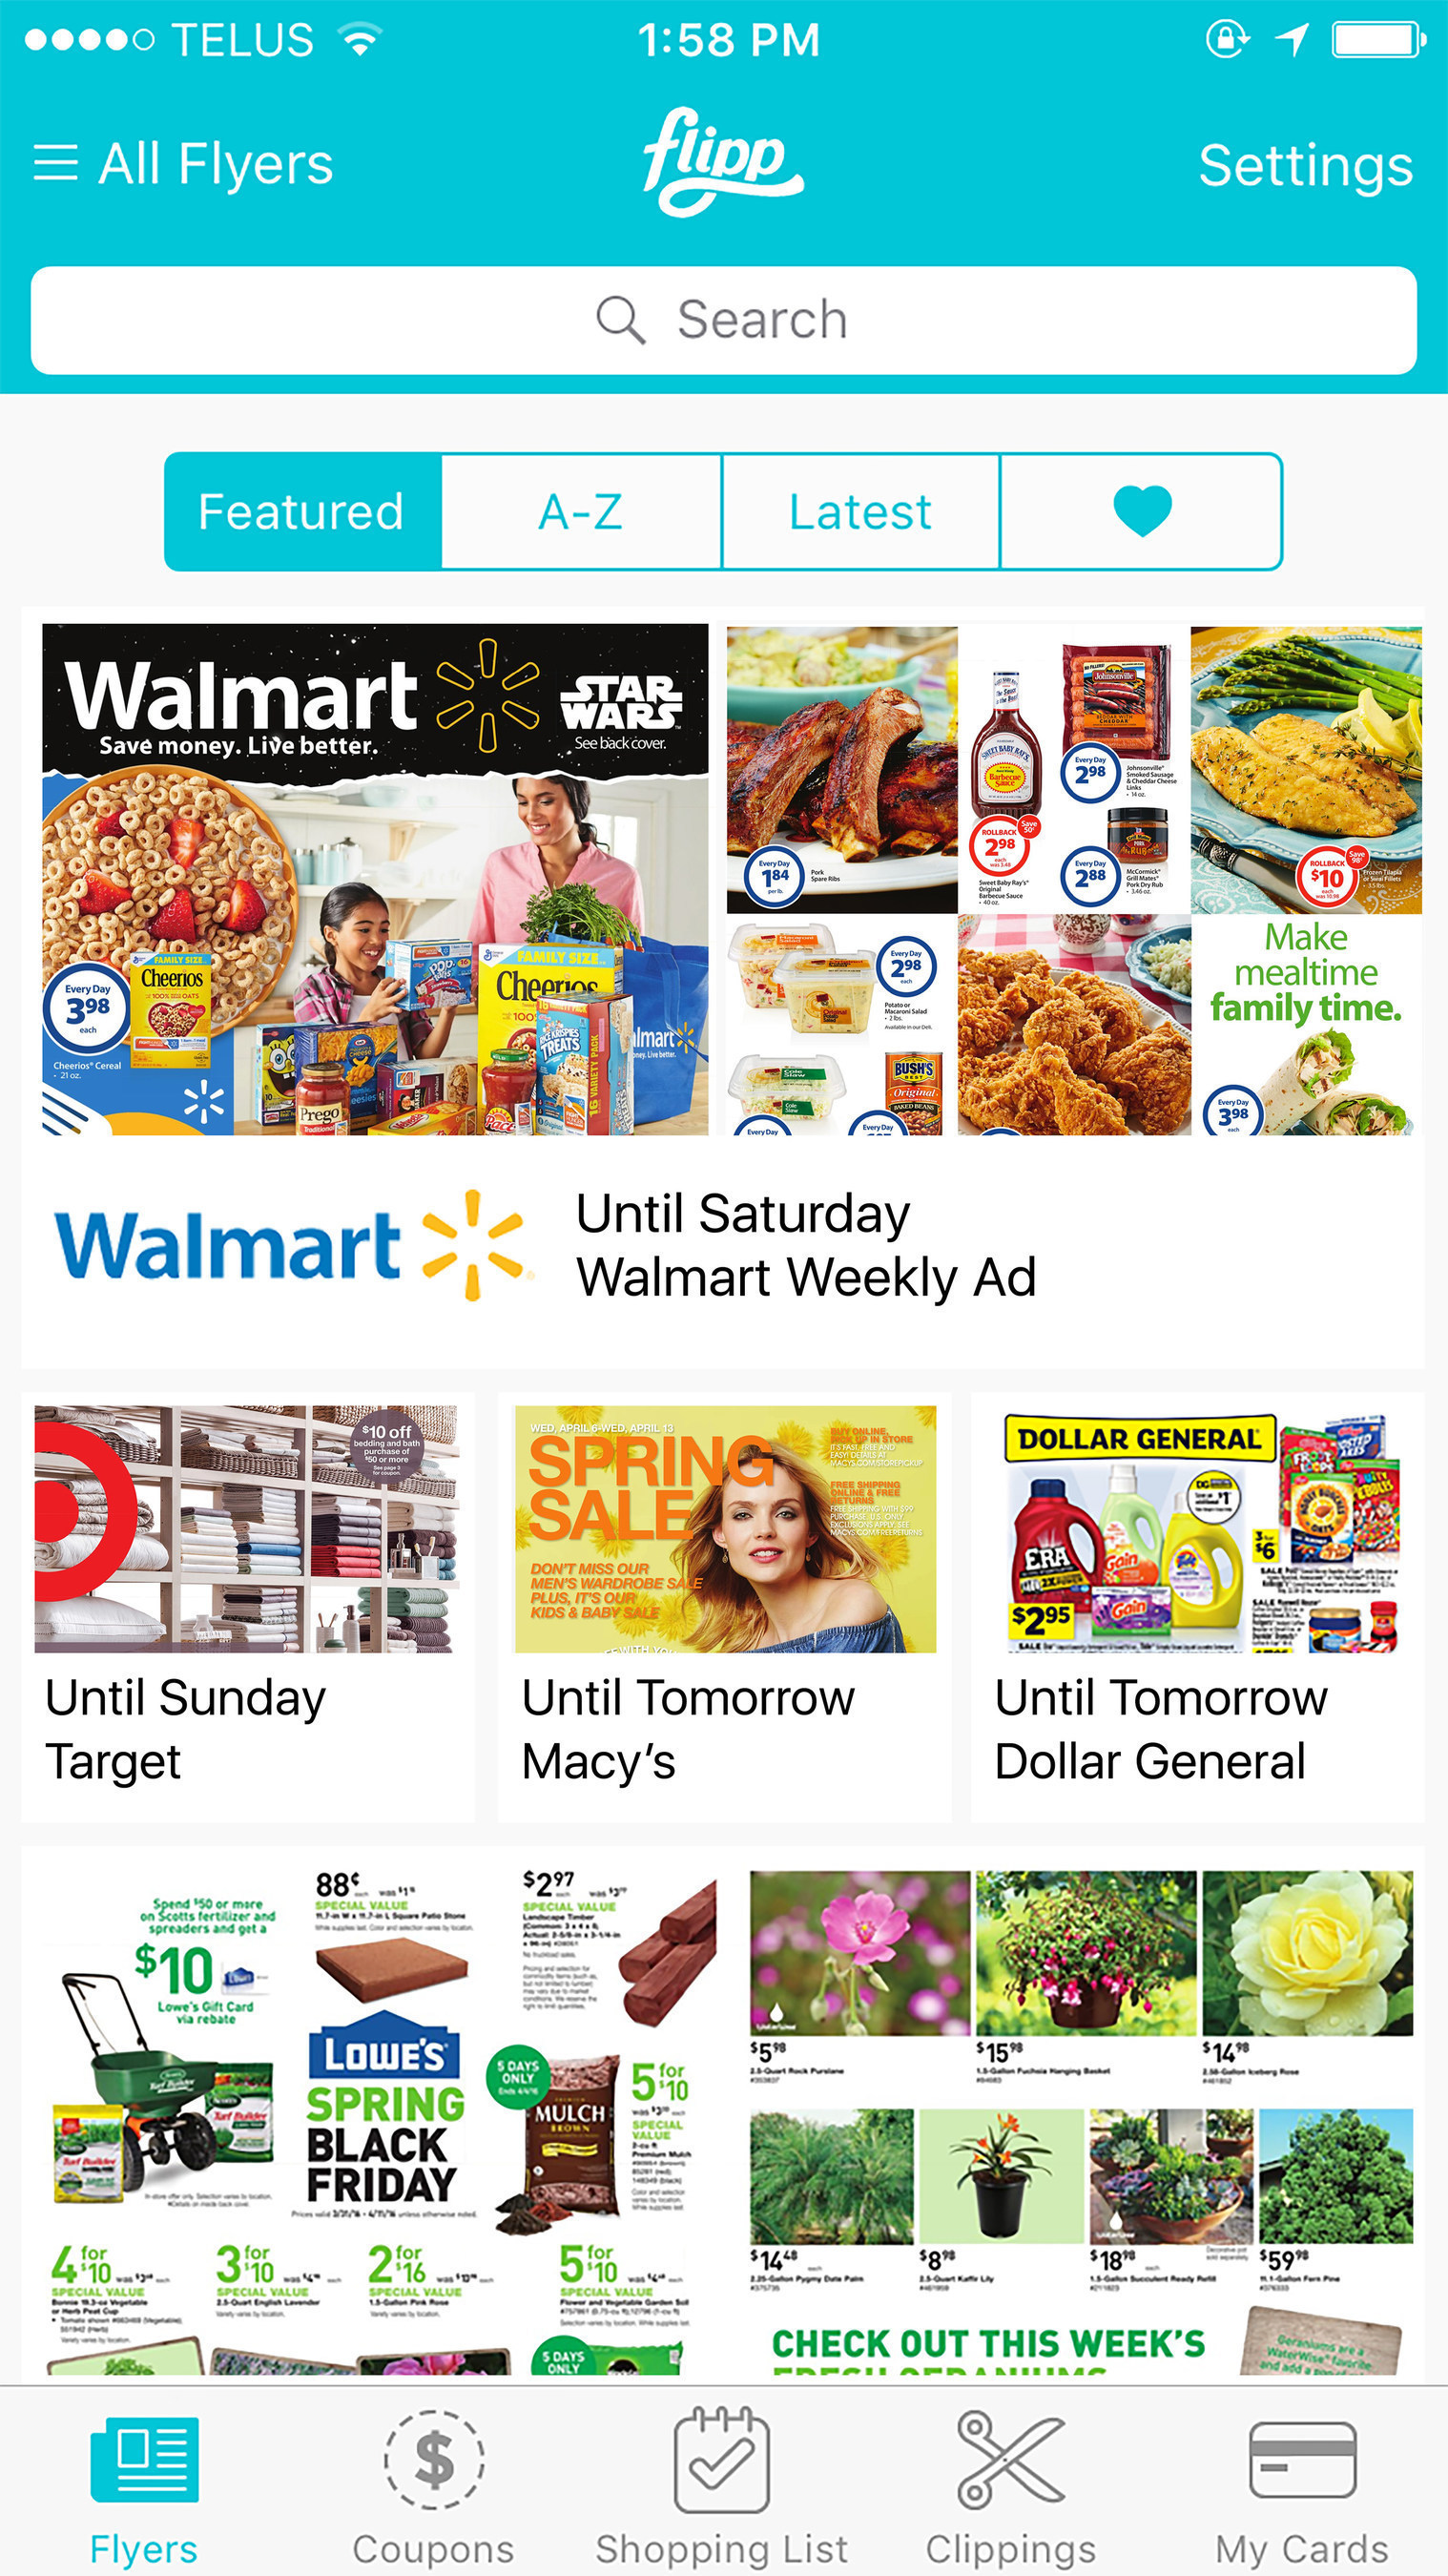 The Flipp app is a destination for millions of consumers to access digital circulars, enabling shoppers to save 20 to 40 percent on their weekly shopping trips.